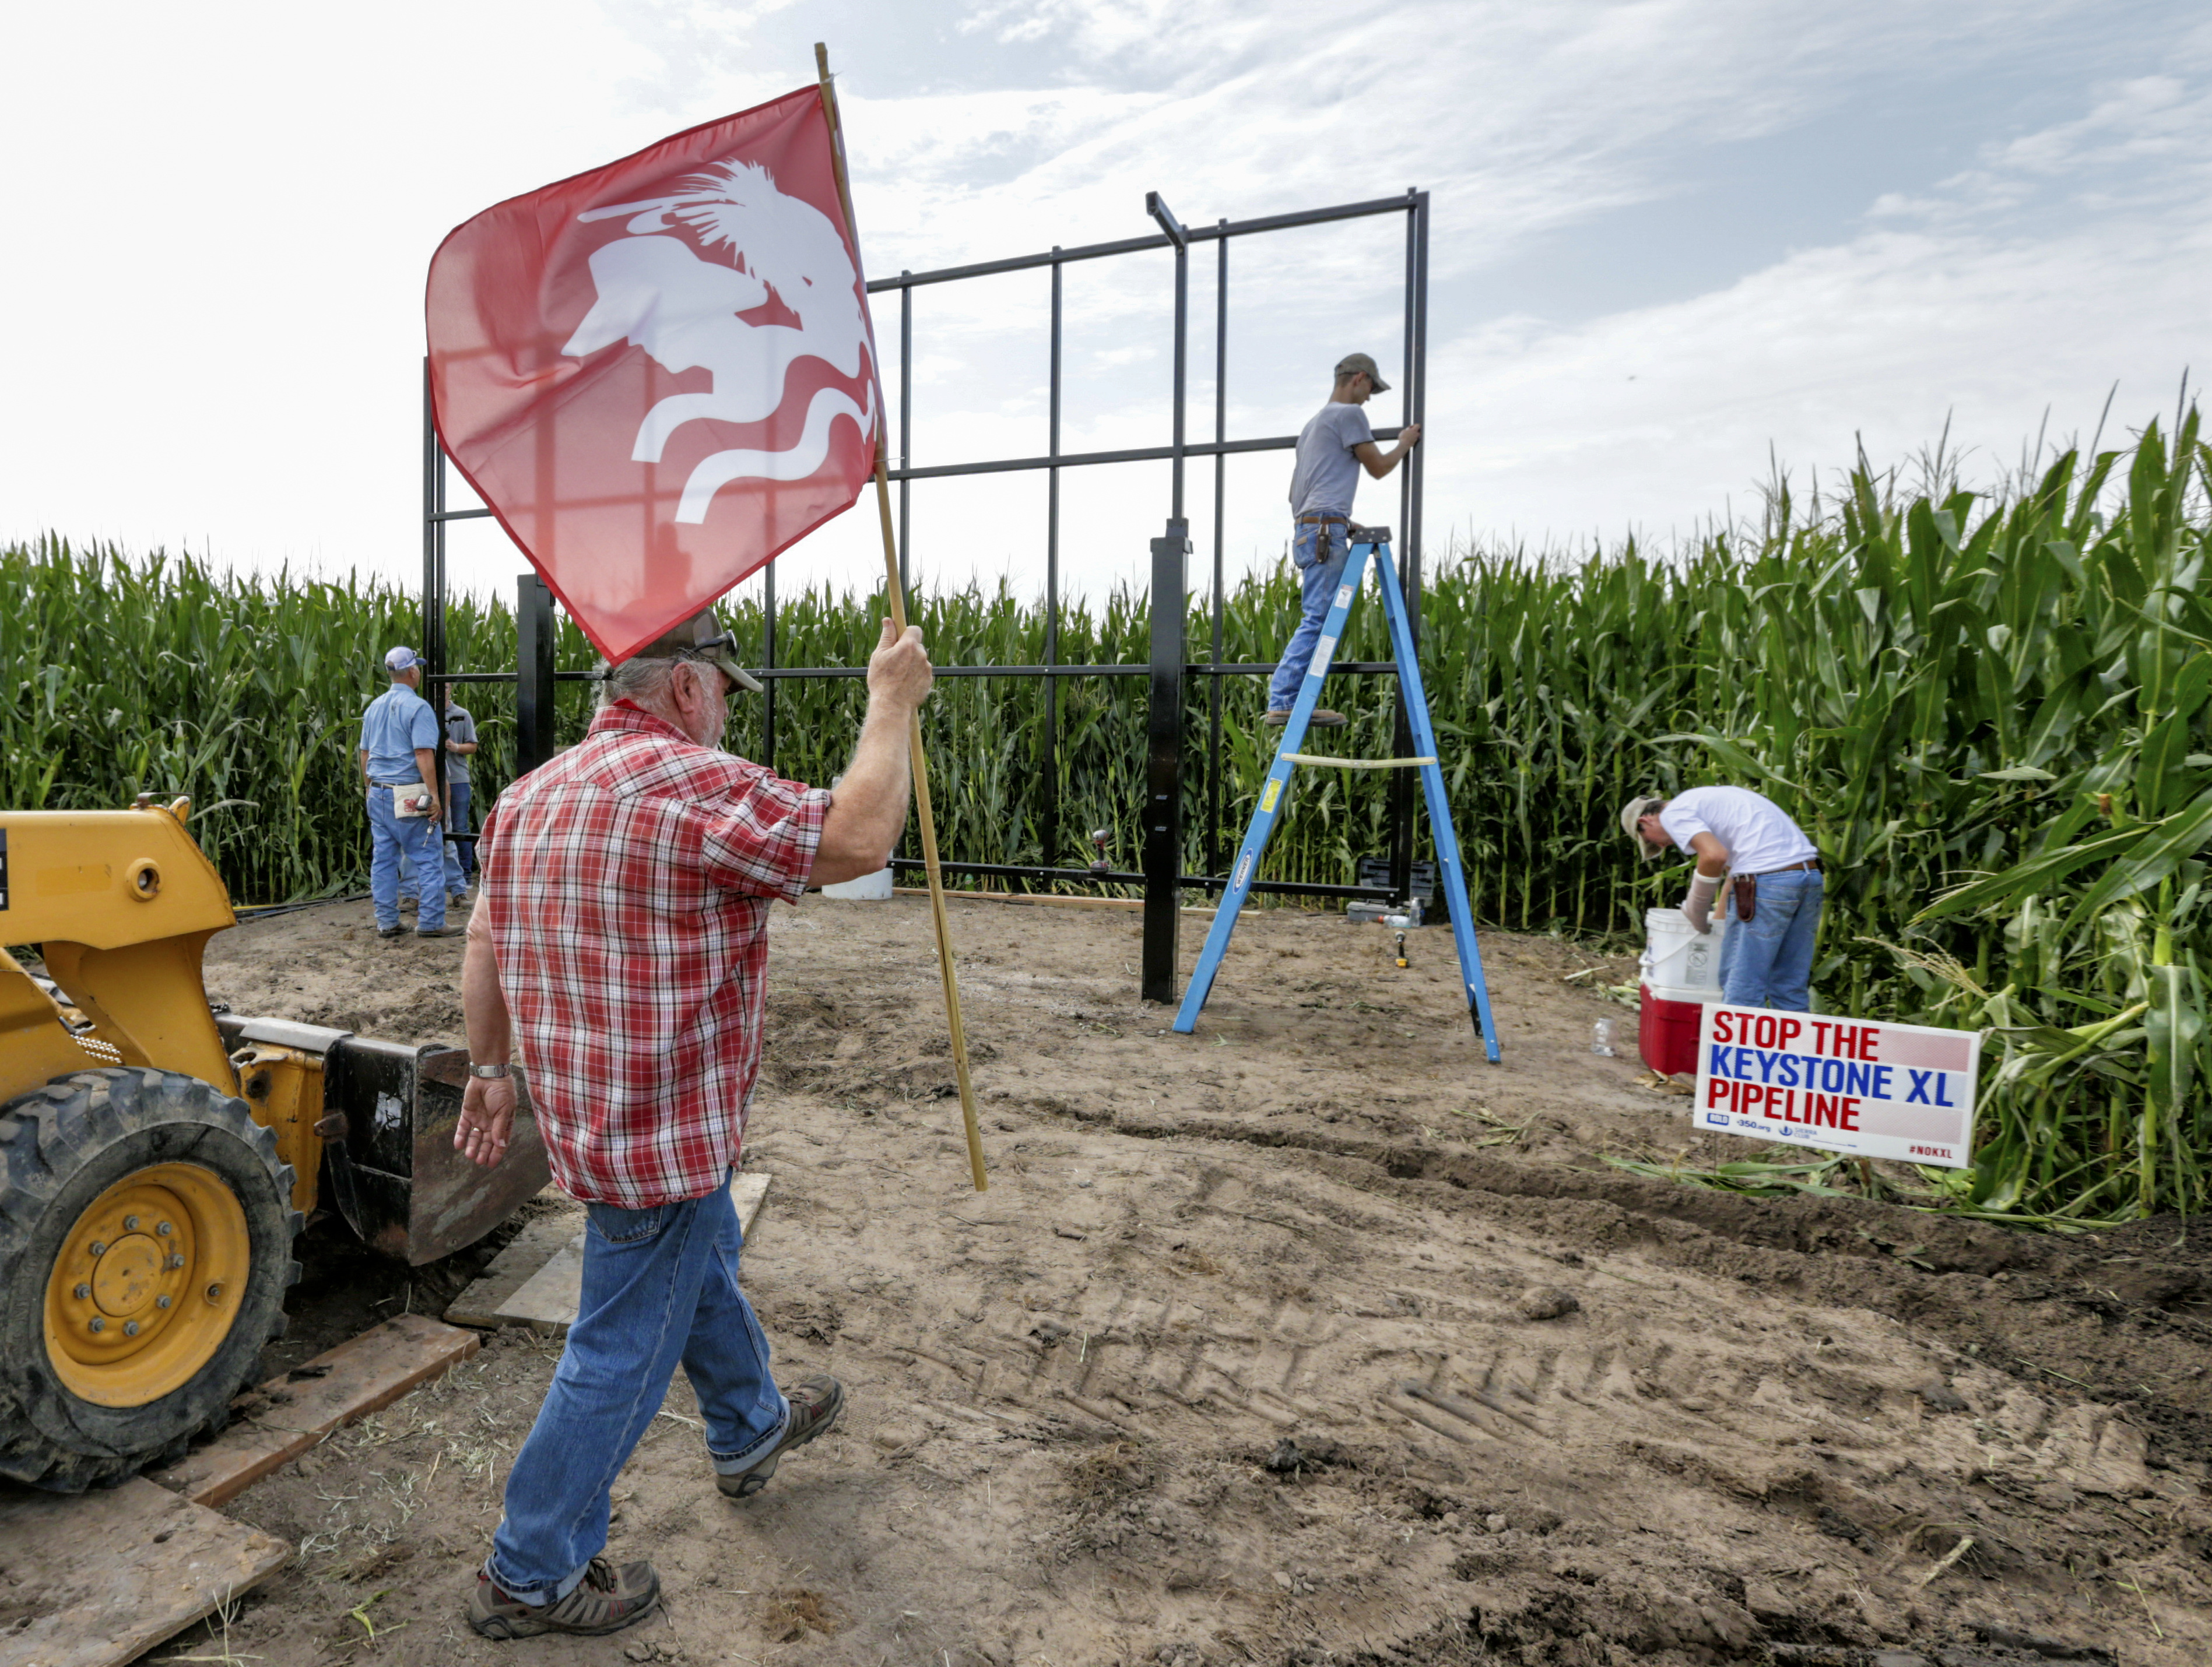 In this July 29, 2017 photo, activist Tom Genung of the organization Bold Nebraska is about to pitch a flag of the Cowboy Indian Alliance at the proposed path of the Keystone XL pipeline, in Silver Creek, Neb., where landowner Jim Carlson and activists were building solar panels. Despite new uncertainty over whether TransCanada, the builder of the Keystone XL pipeline will continue the project, longtime opponents in Nebraska aren't letting their guard down and neither are law enforcement officials who may have to react to protests if it wins approval. (AP Photo/Nati Harnik)